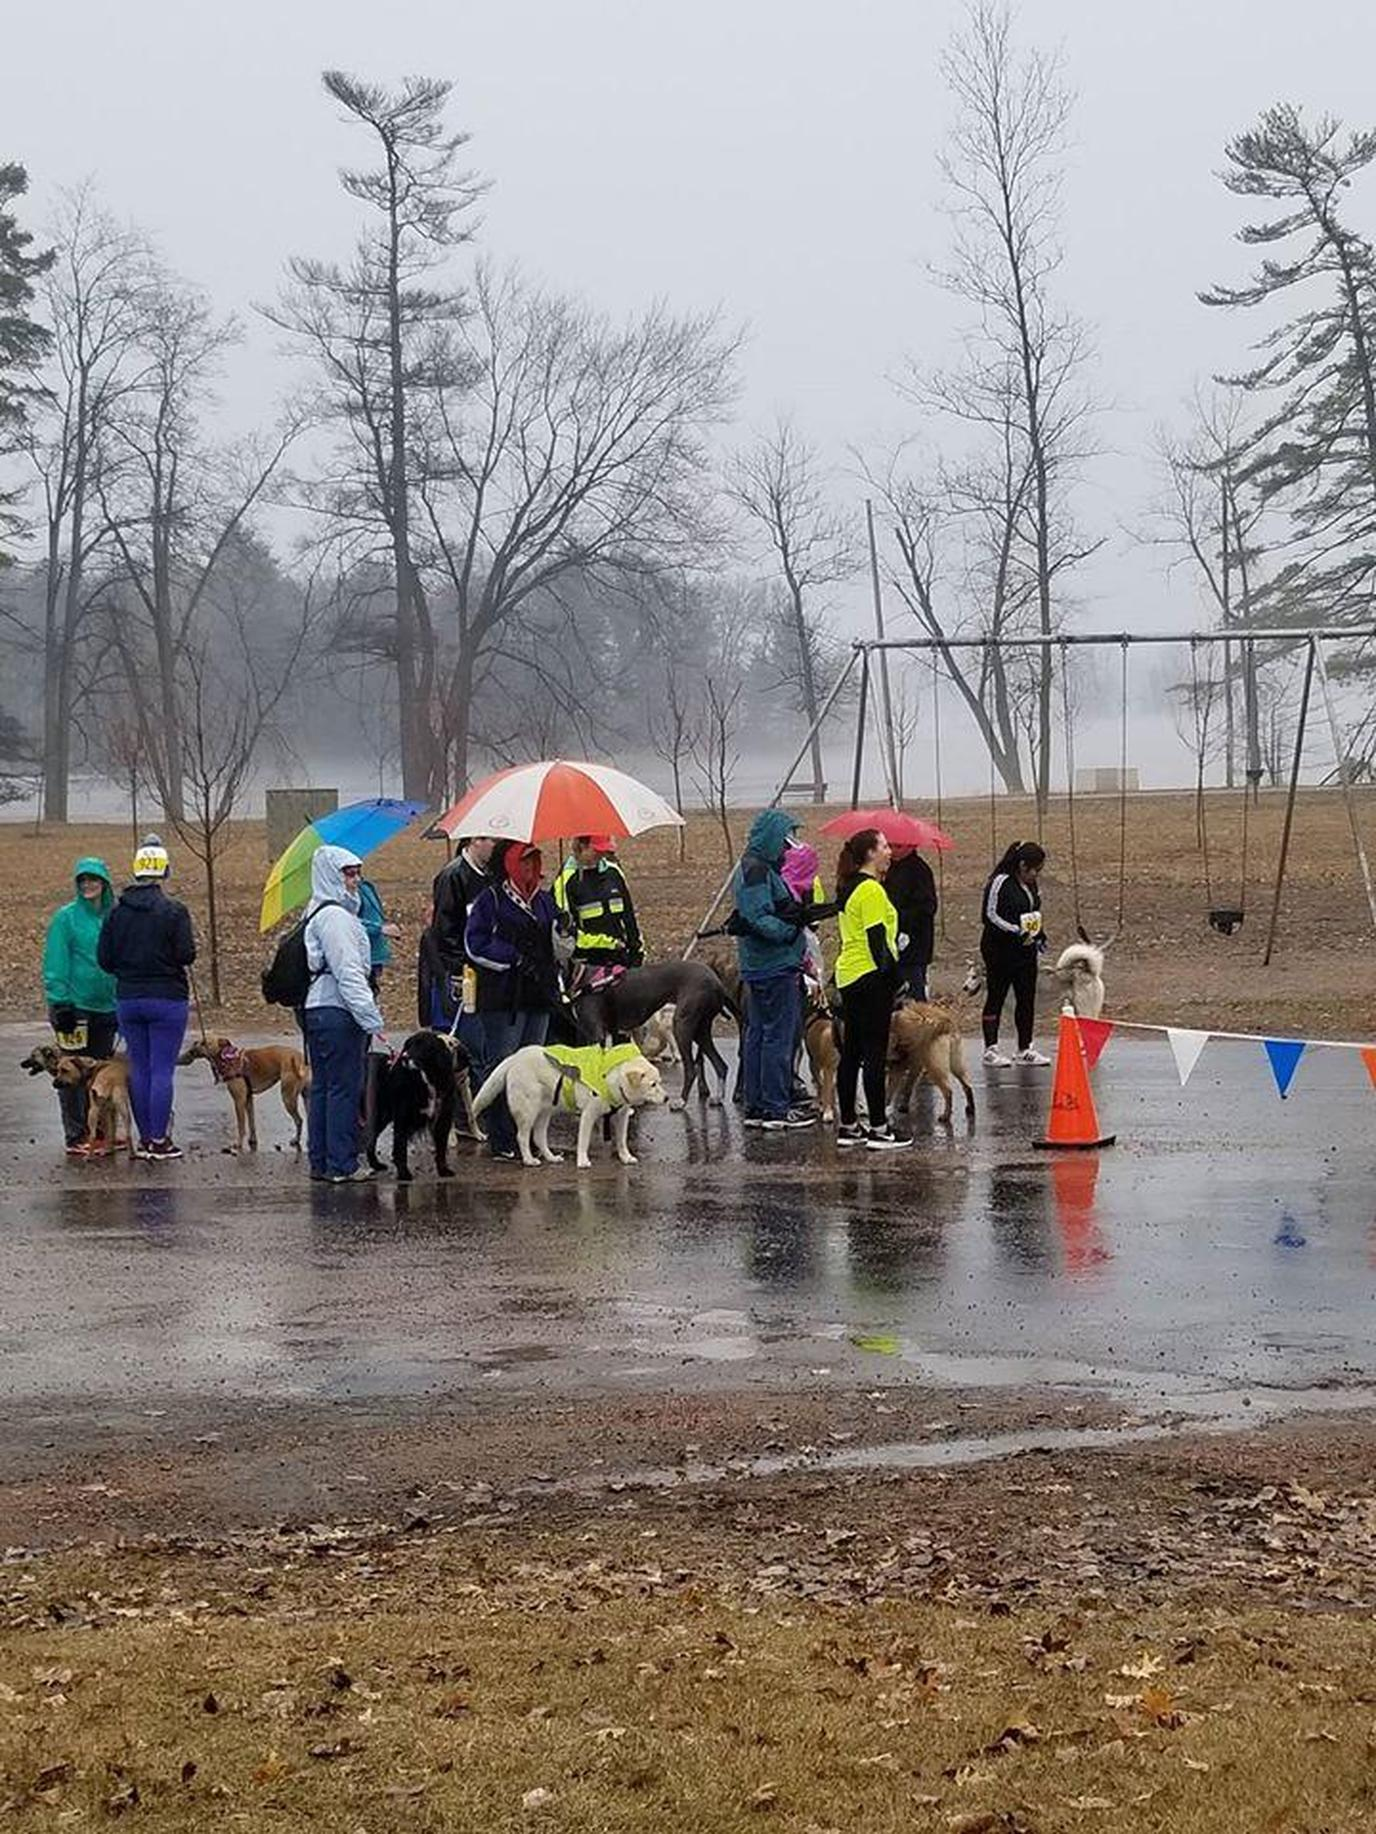 A Group of Participants Prepare to Run in the Rain During a Pet-Friendly Spring Run in Wisonsin.